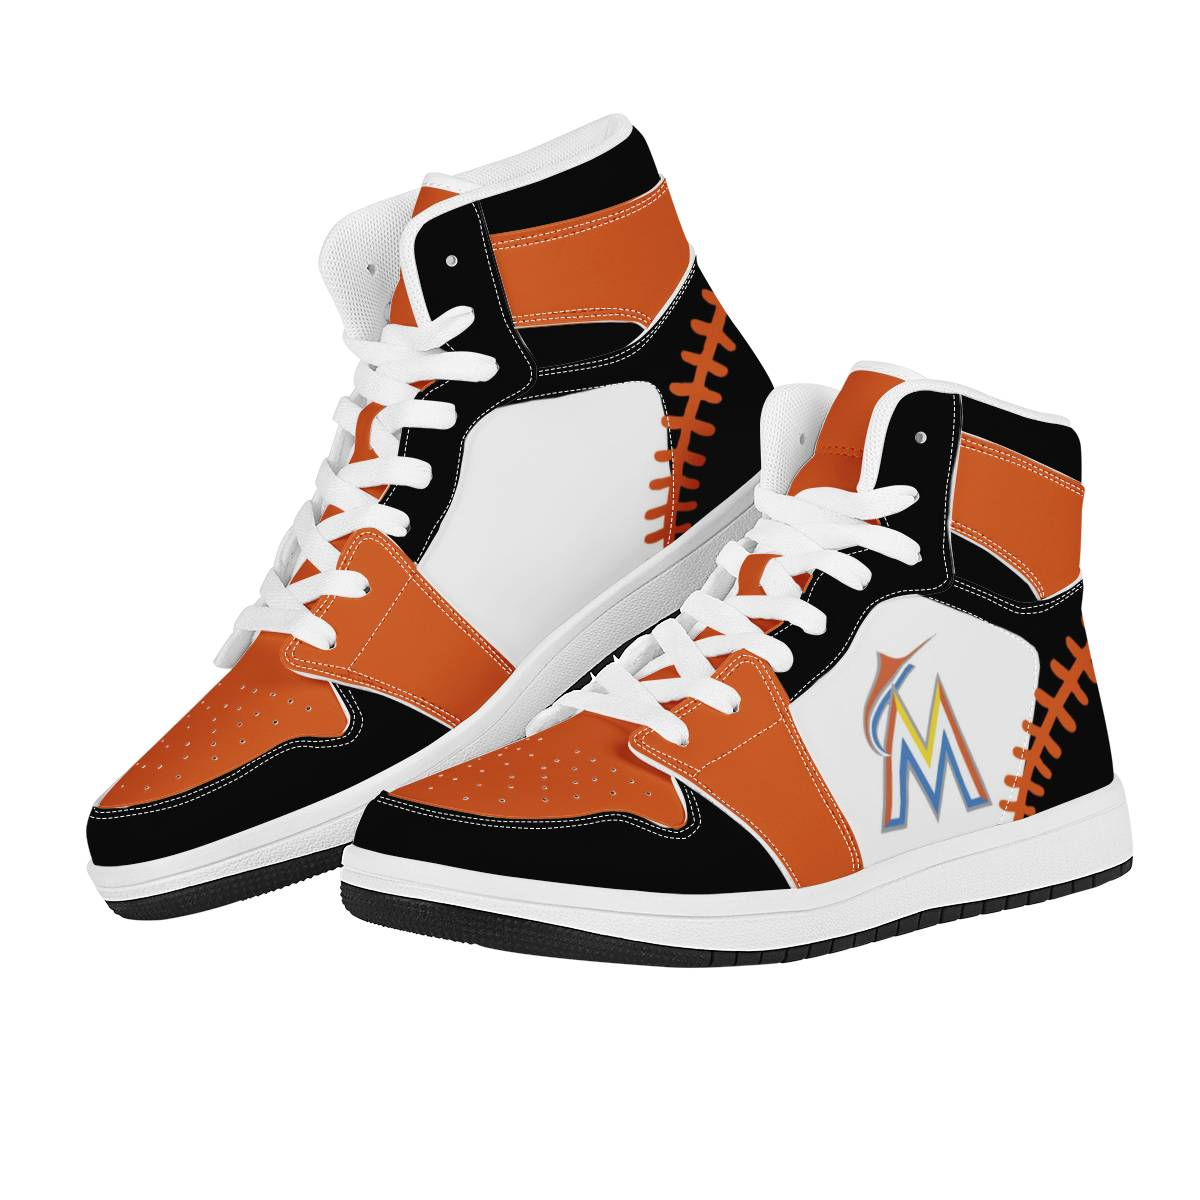 Women's Miami Marlins High Top Leather AJ1 Sneakers 003